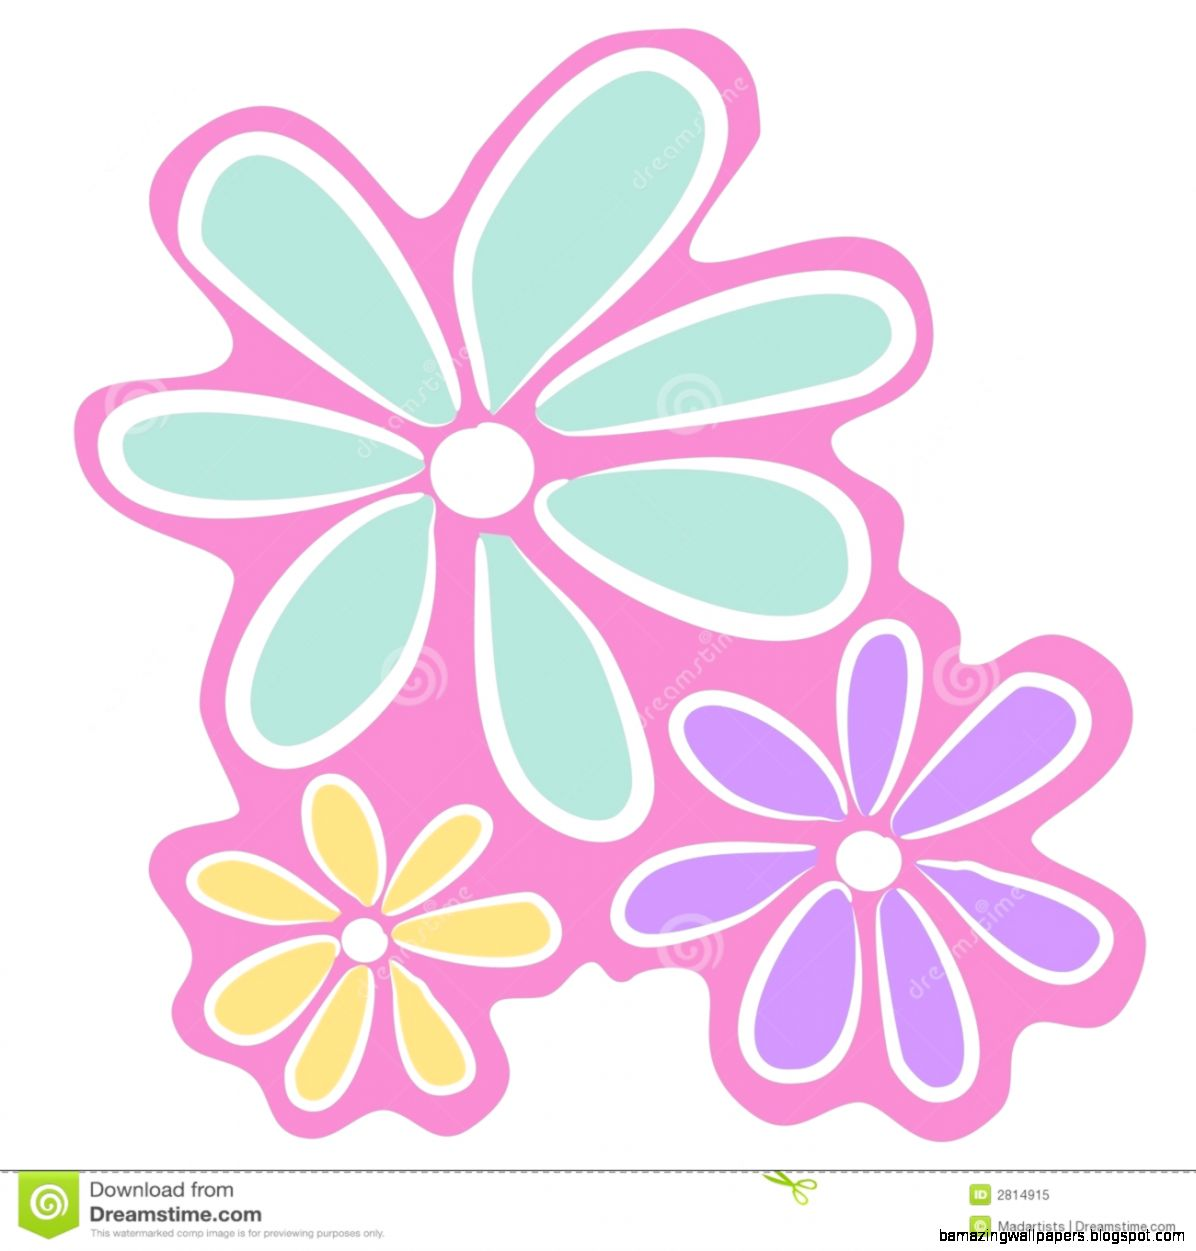 Pink Flowers Clip Art Amazing Wallpapers